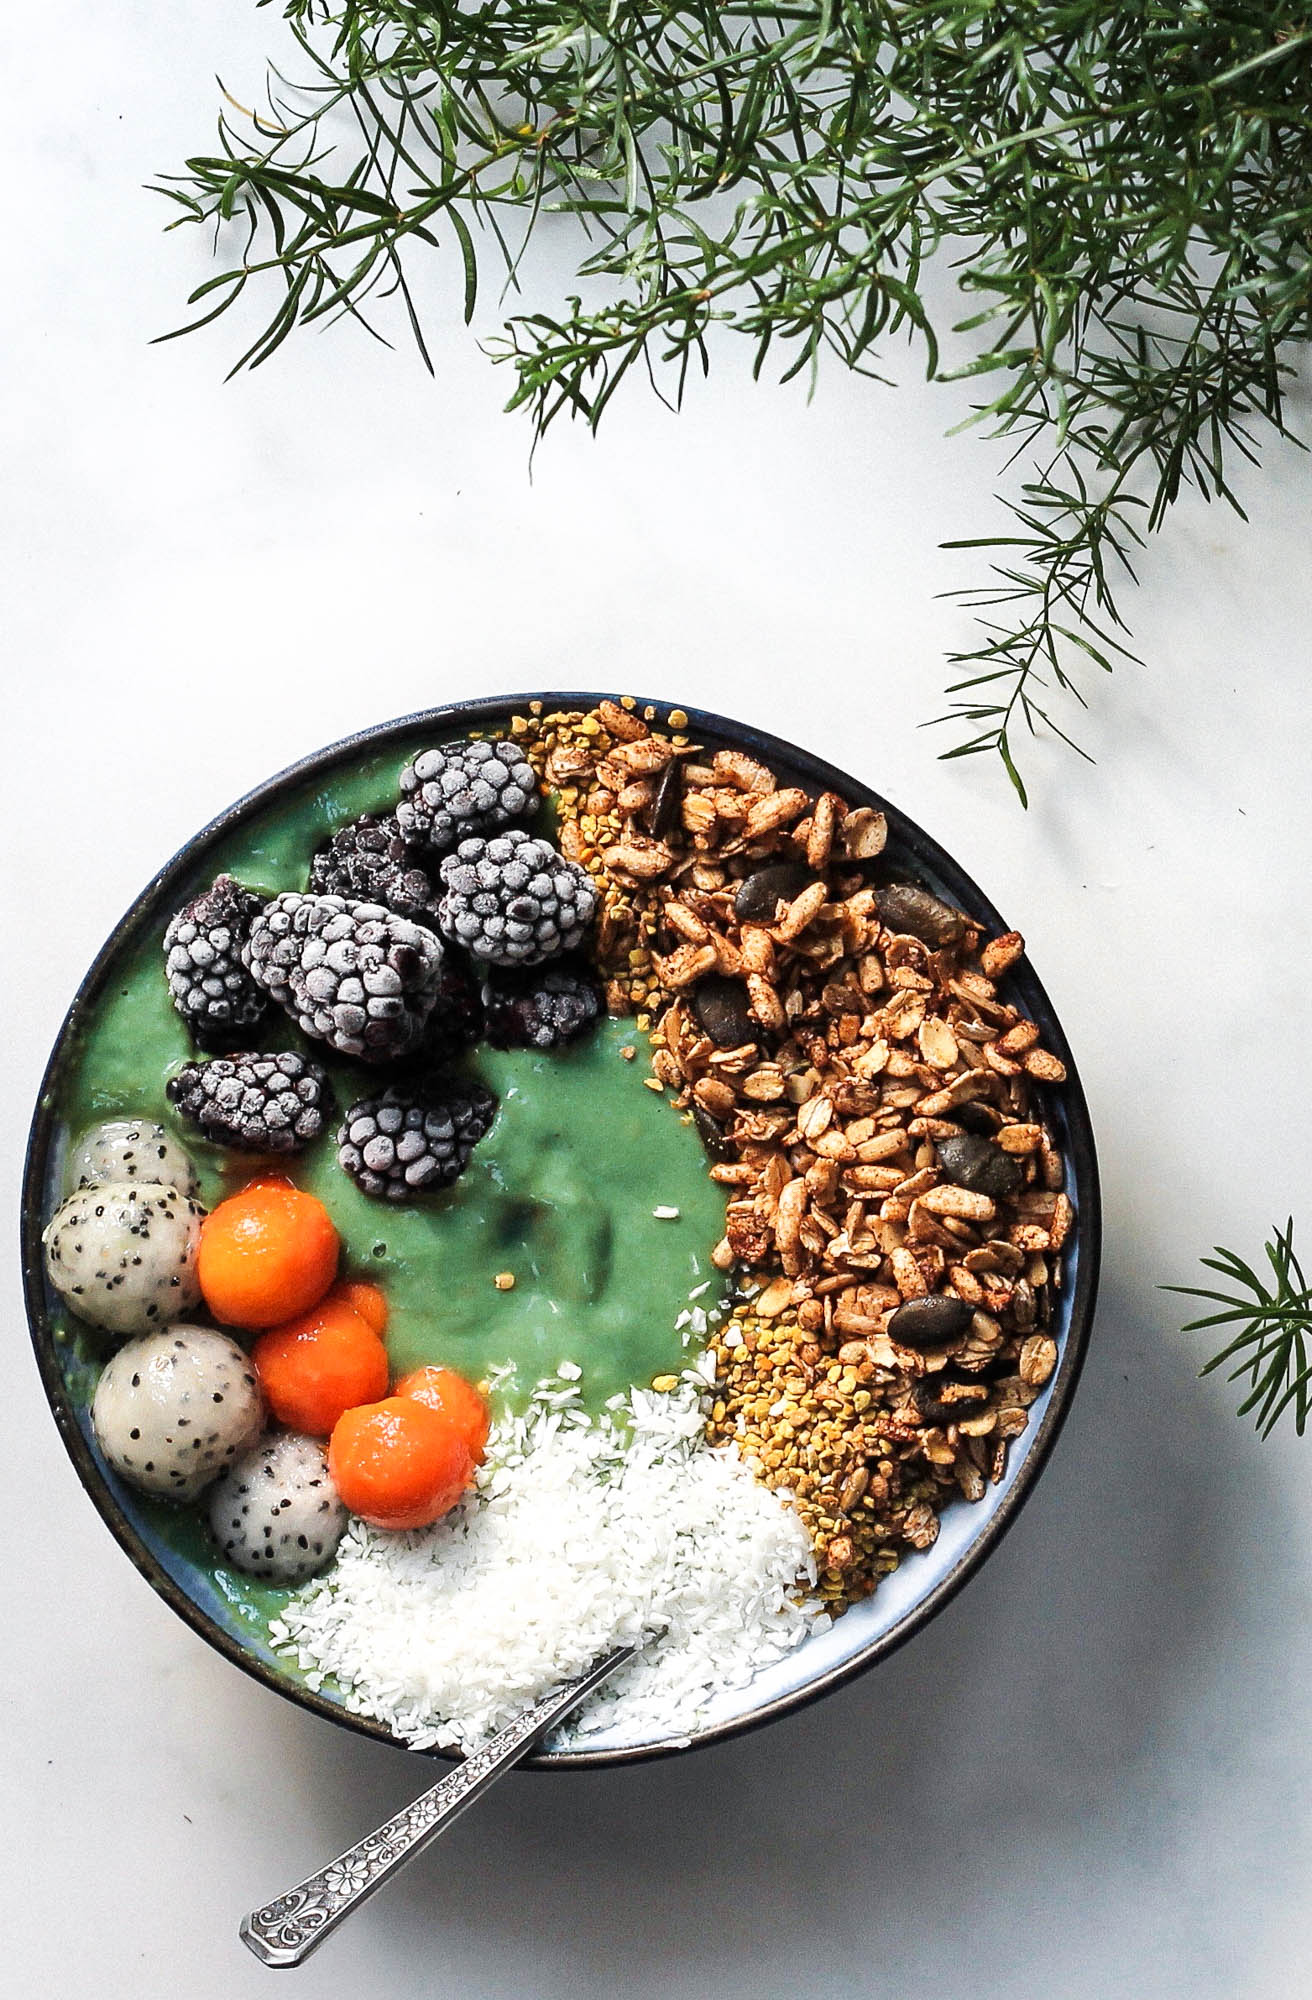 Mermaid Smoothie Bowl + Hawaii Mini Guide || Healthy + tropical smoothie bowl with superfoods to help you feel your best! Perfect for breakfast, lunch or as a snack on a hot summer day. No refined sugars, dairy free, plant based, gluten free + vegan with removal of honey. || creamandhoney.ca